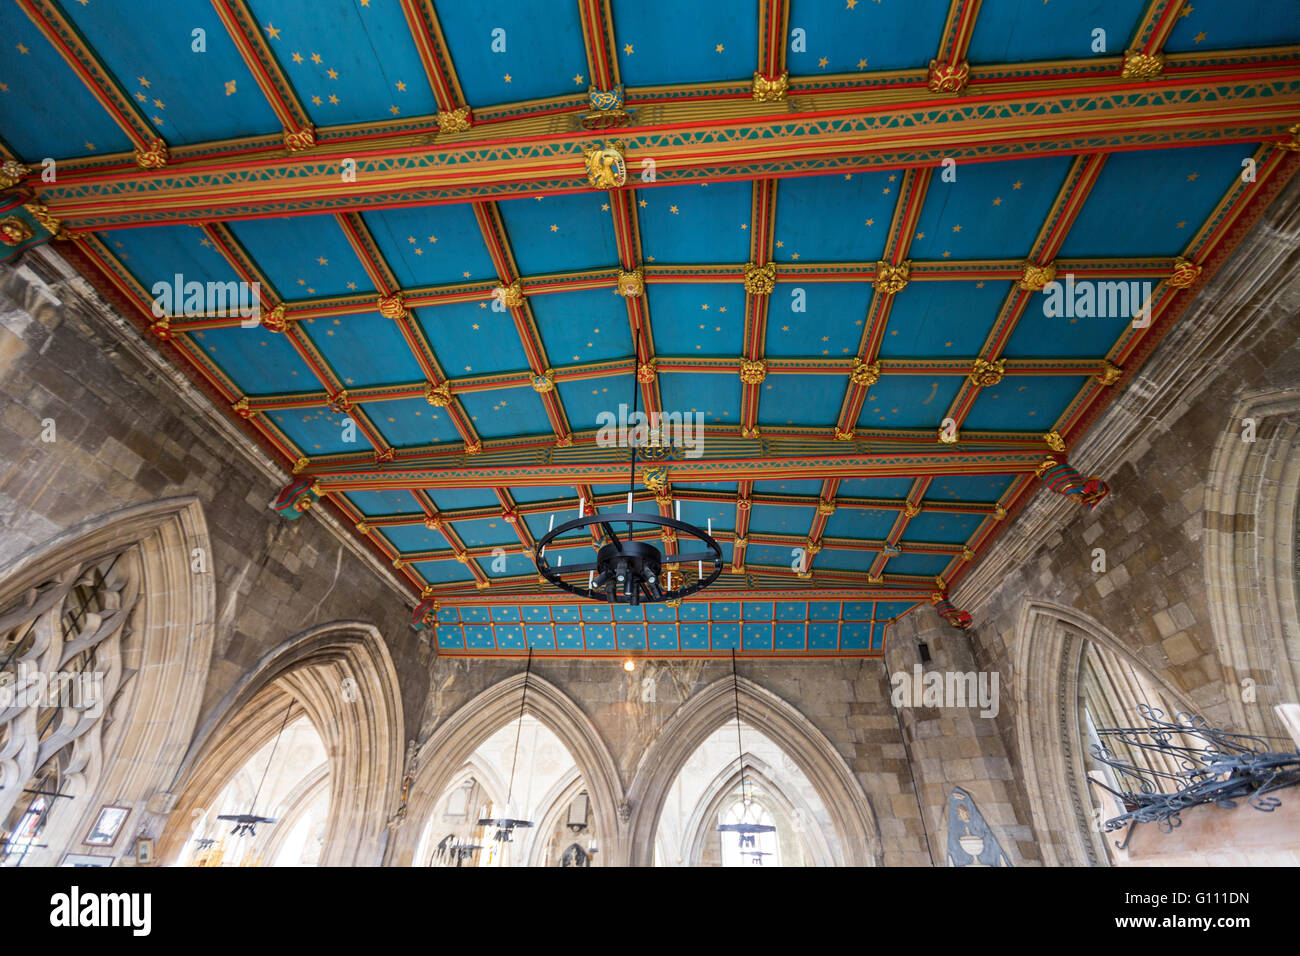 Celestial blue painted ceiling in St Mary's church, Beverley, Yorkshire and the Humber, England, - Stock Image